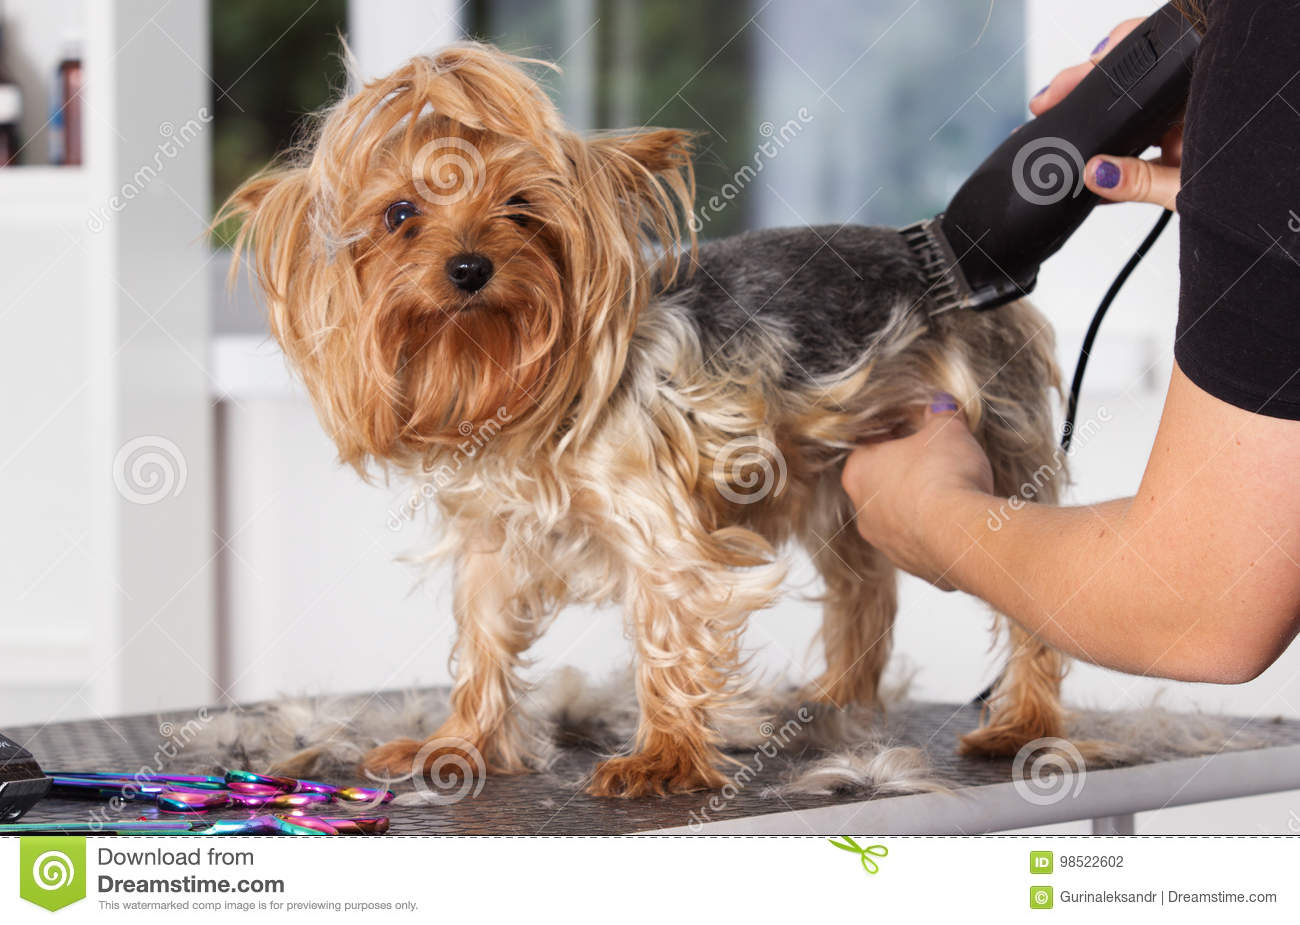 Yorkshire Terrier Dog On A Hairstyle Stock Photo Image Of Grooming